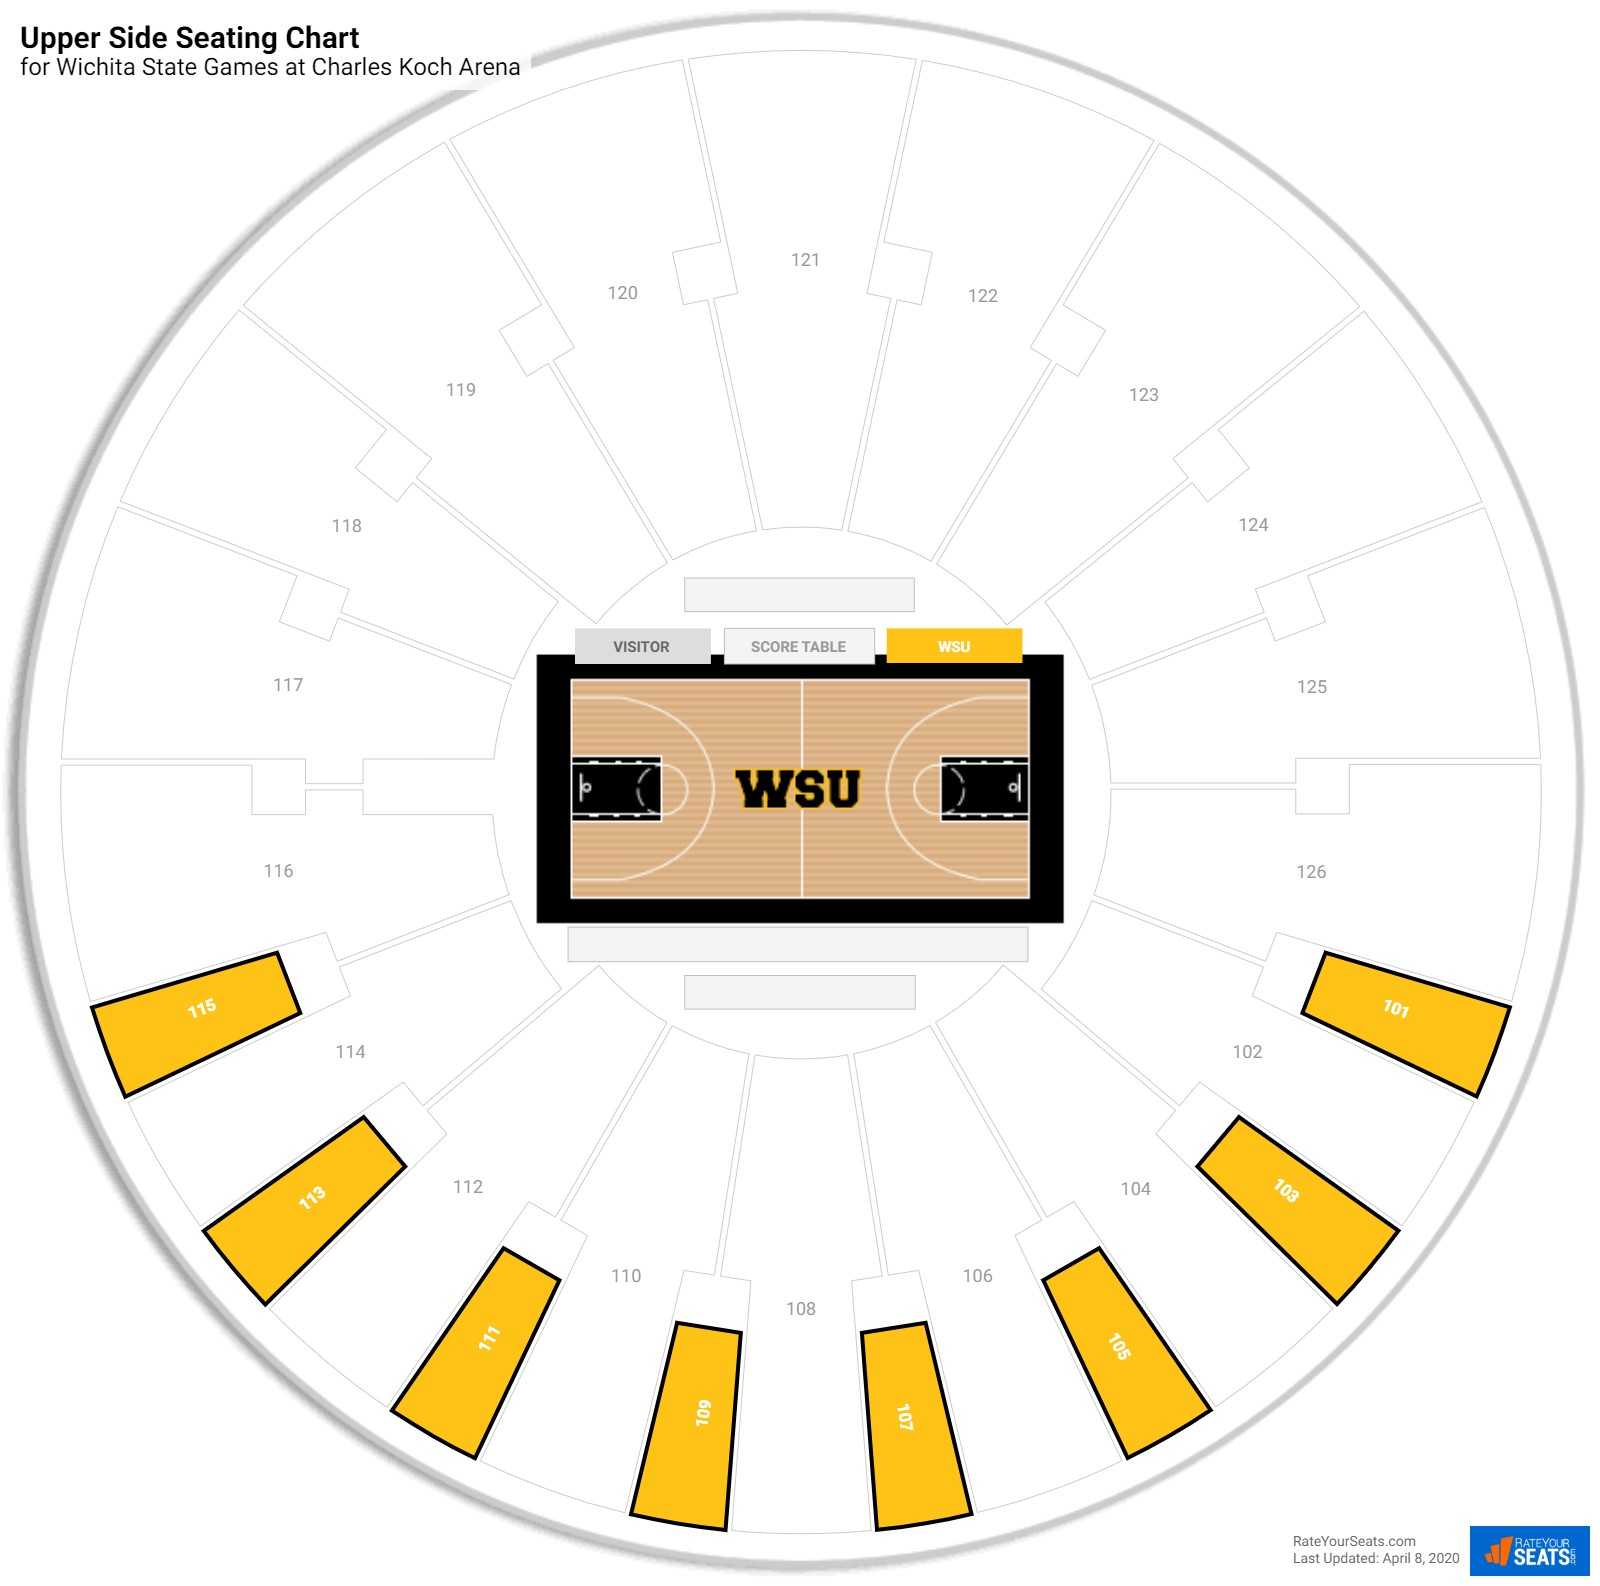 Charles Koch Arena Upper Side seating chart